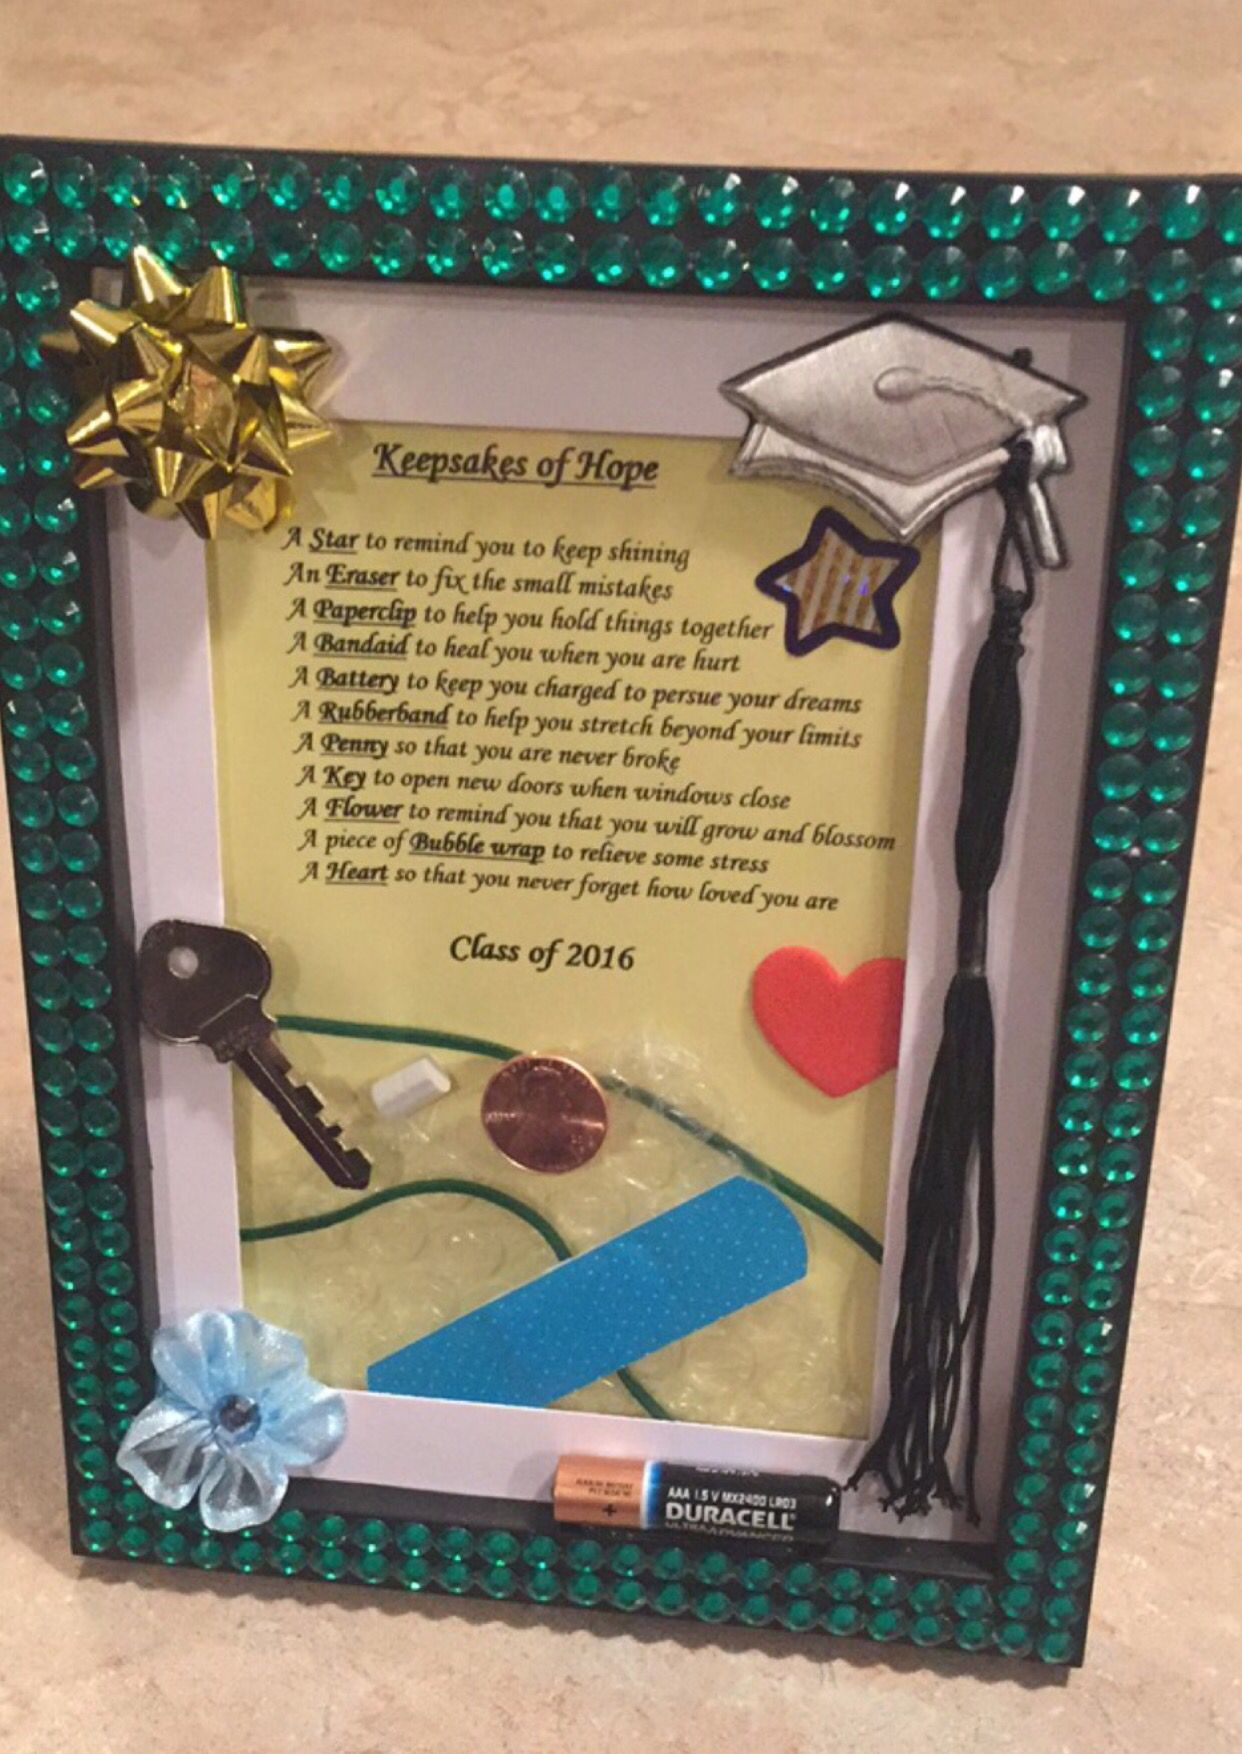 Keepsakes of Hope! The perfect DIY graduation gift or for